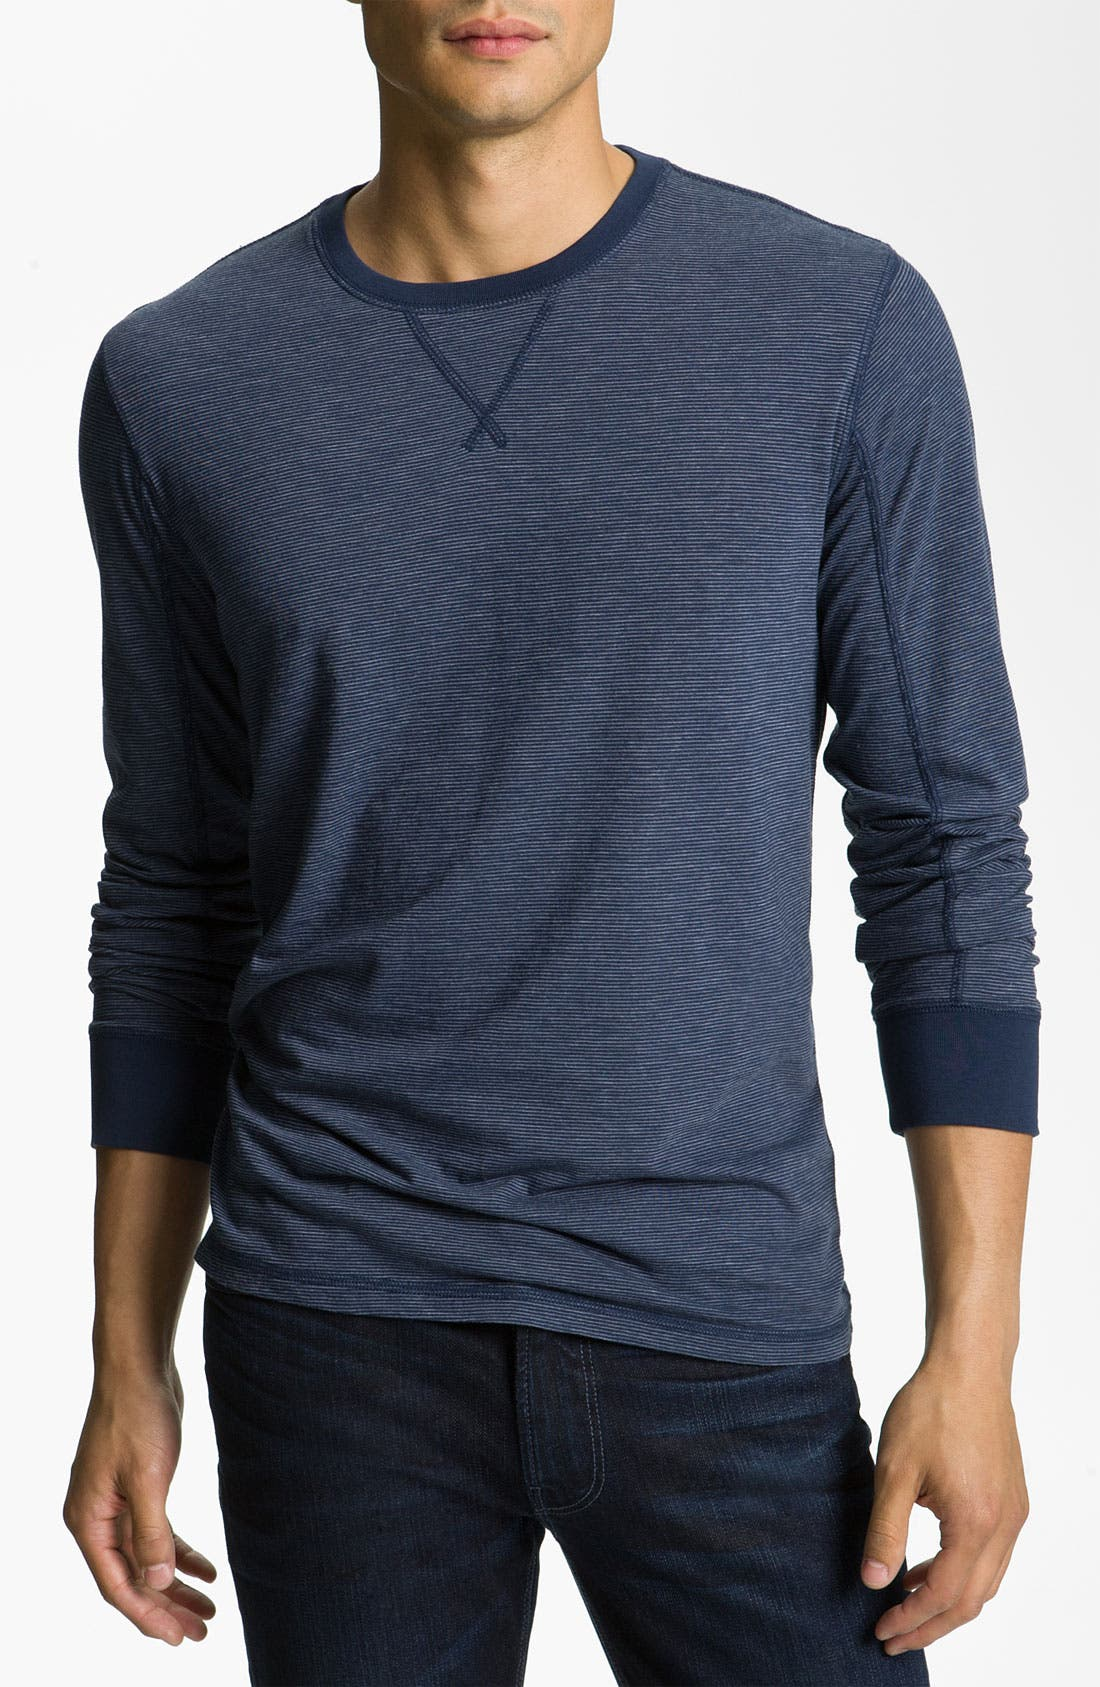 Alternate Image 1 Selected - 7 For All Mankind® Crewneck T-Shirt